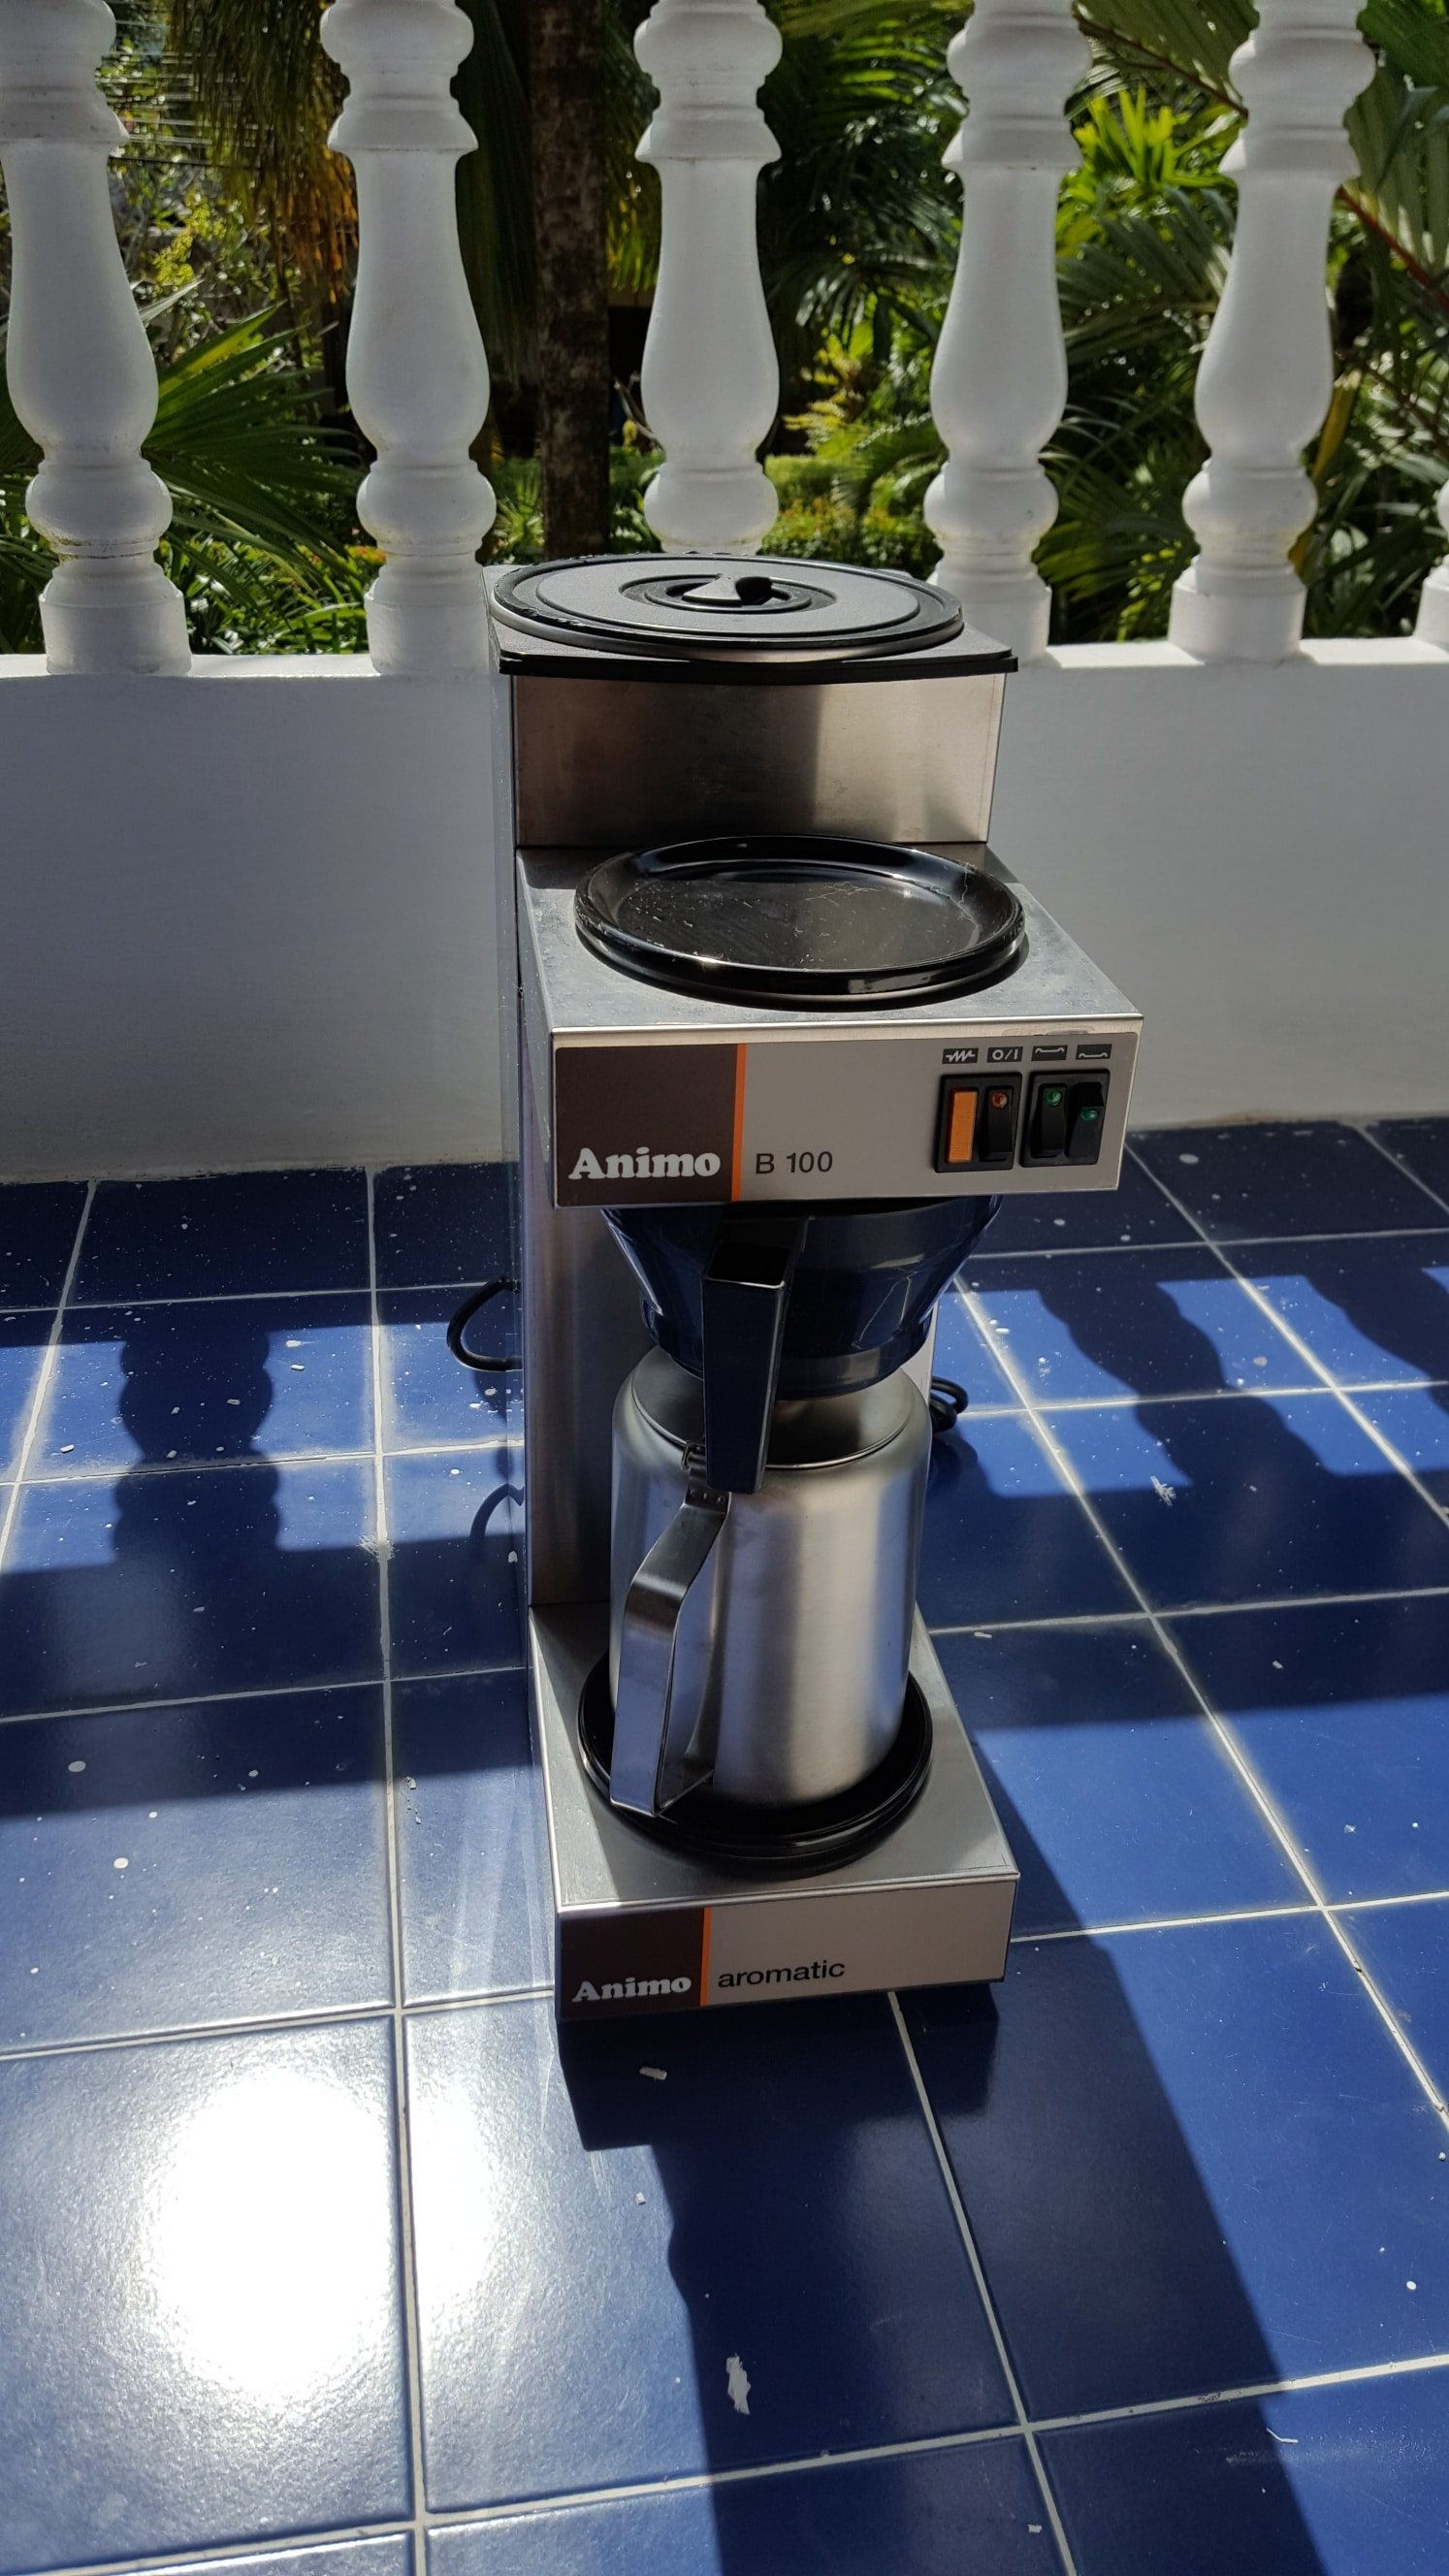 Animo B100 aromatic coffee maker